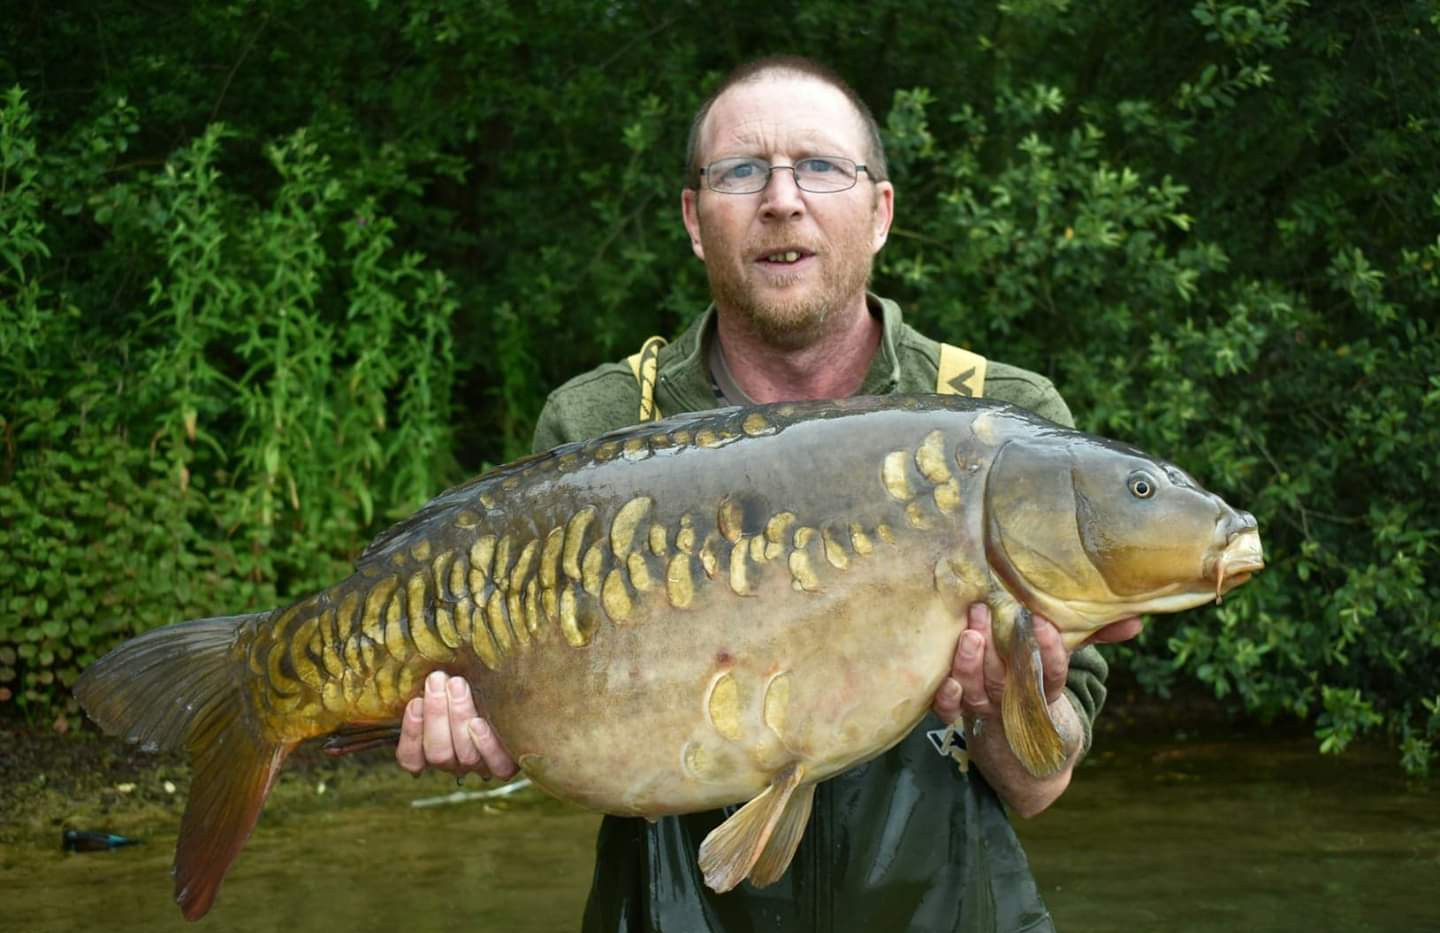 Paul Beresford with a 31lb 8oz fish from Astbury Mere